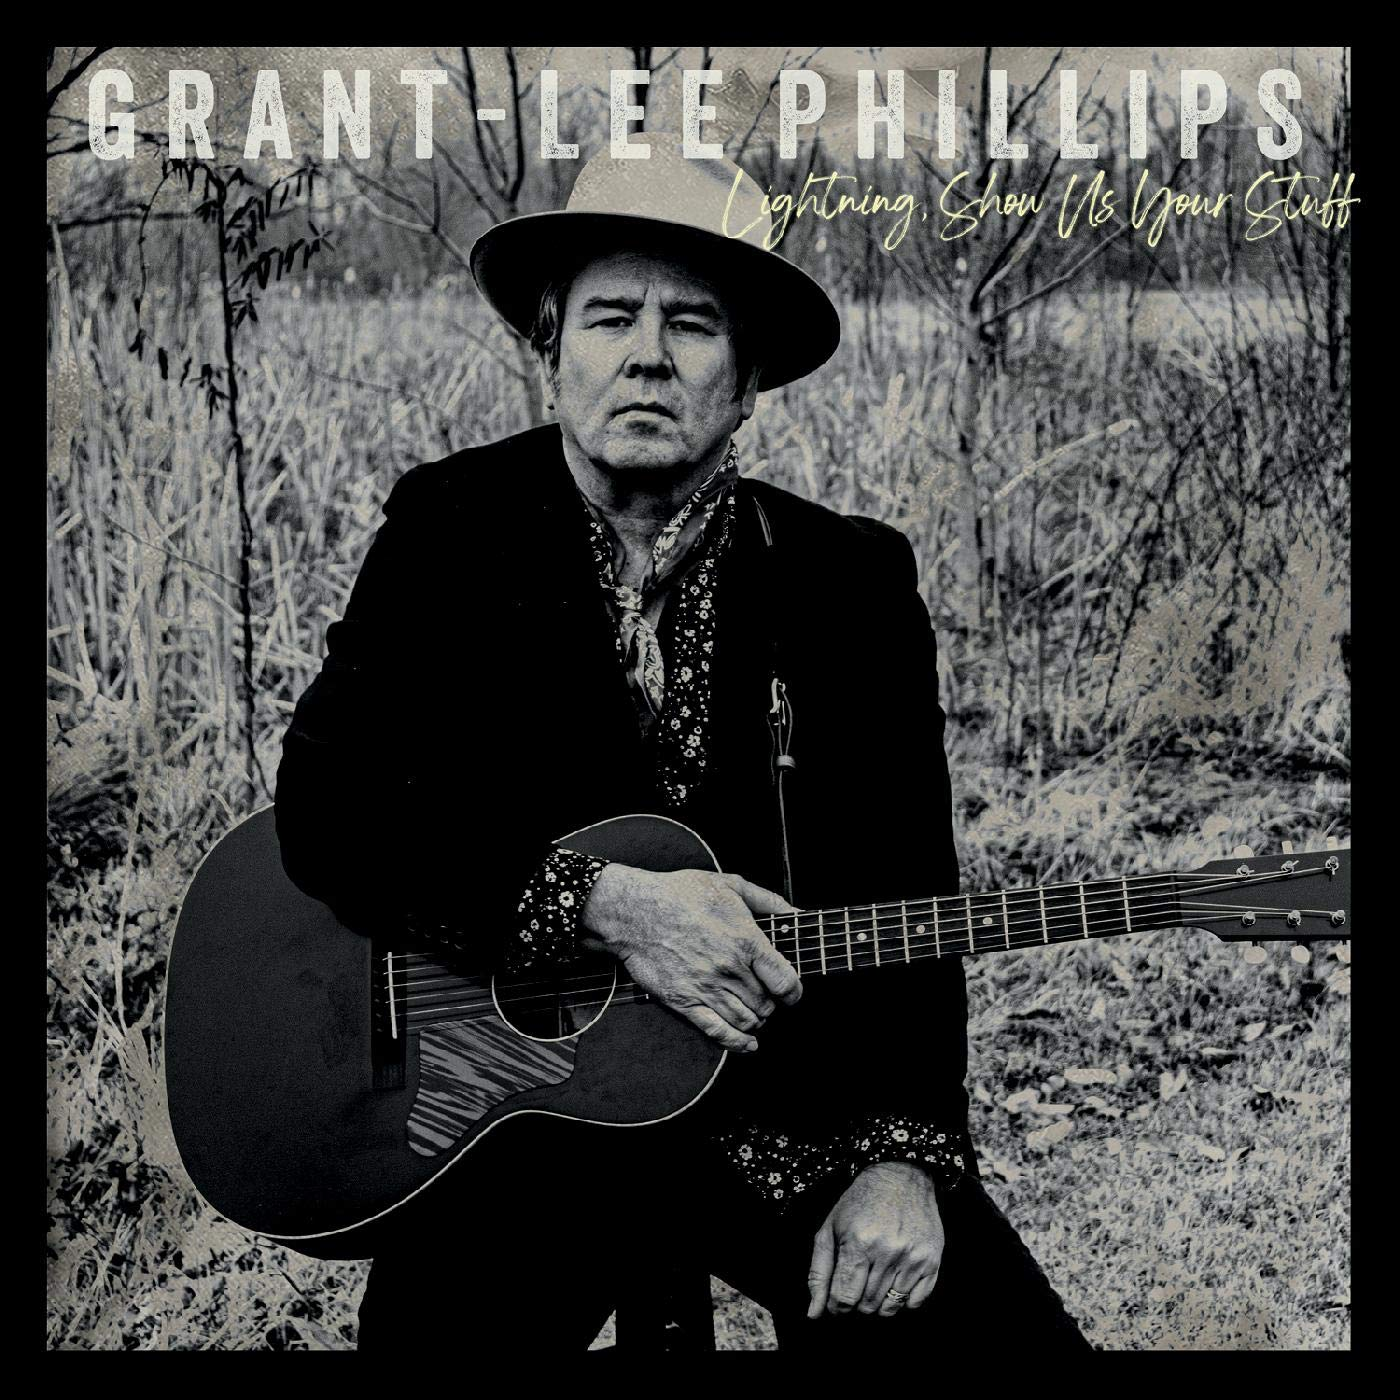 Grant-Lee Phillips - Lightning, Show Us Your Stuff [First Edition LP w/ Bonus 7in Single]